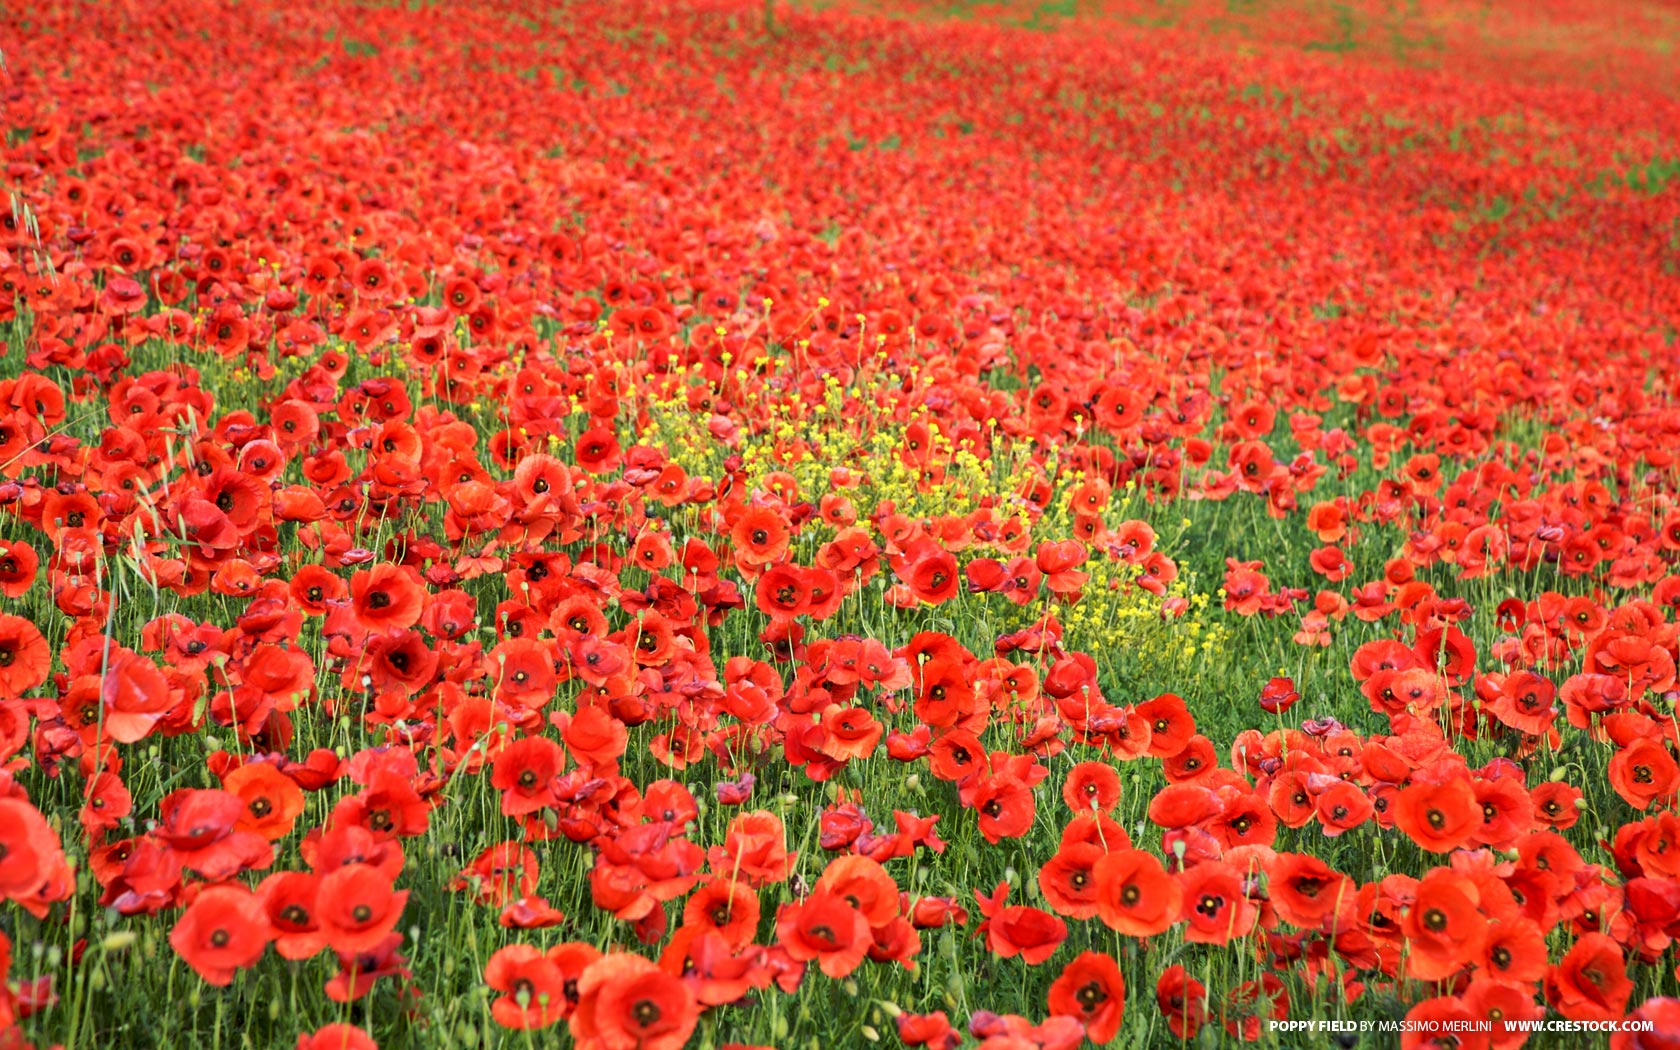 field of poppies - flowers and plants wallpaper